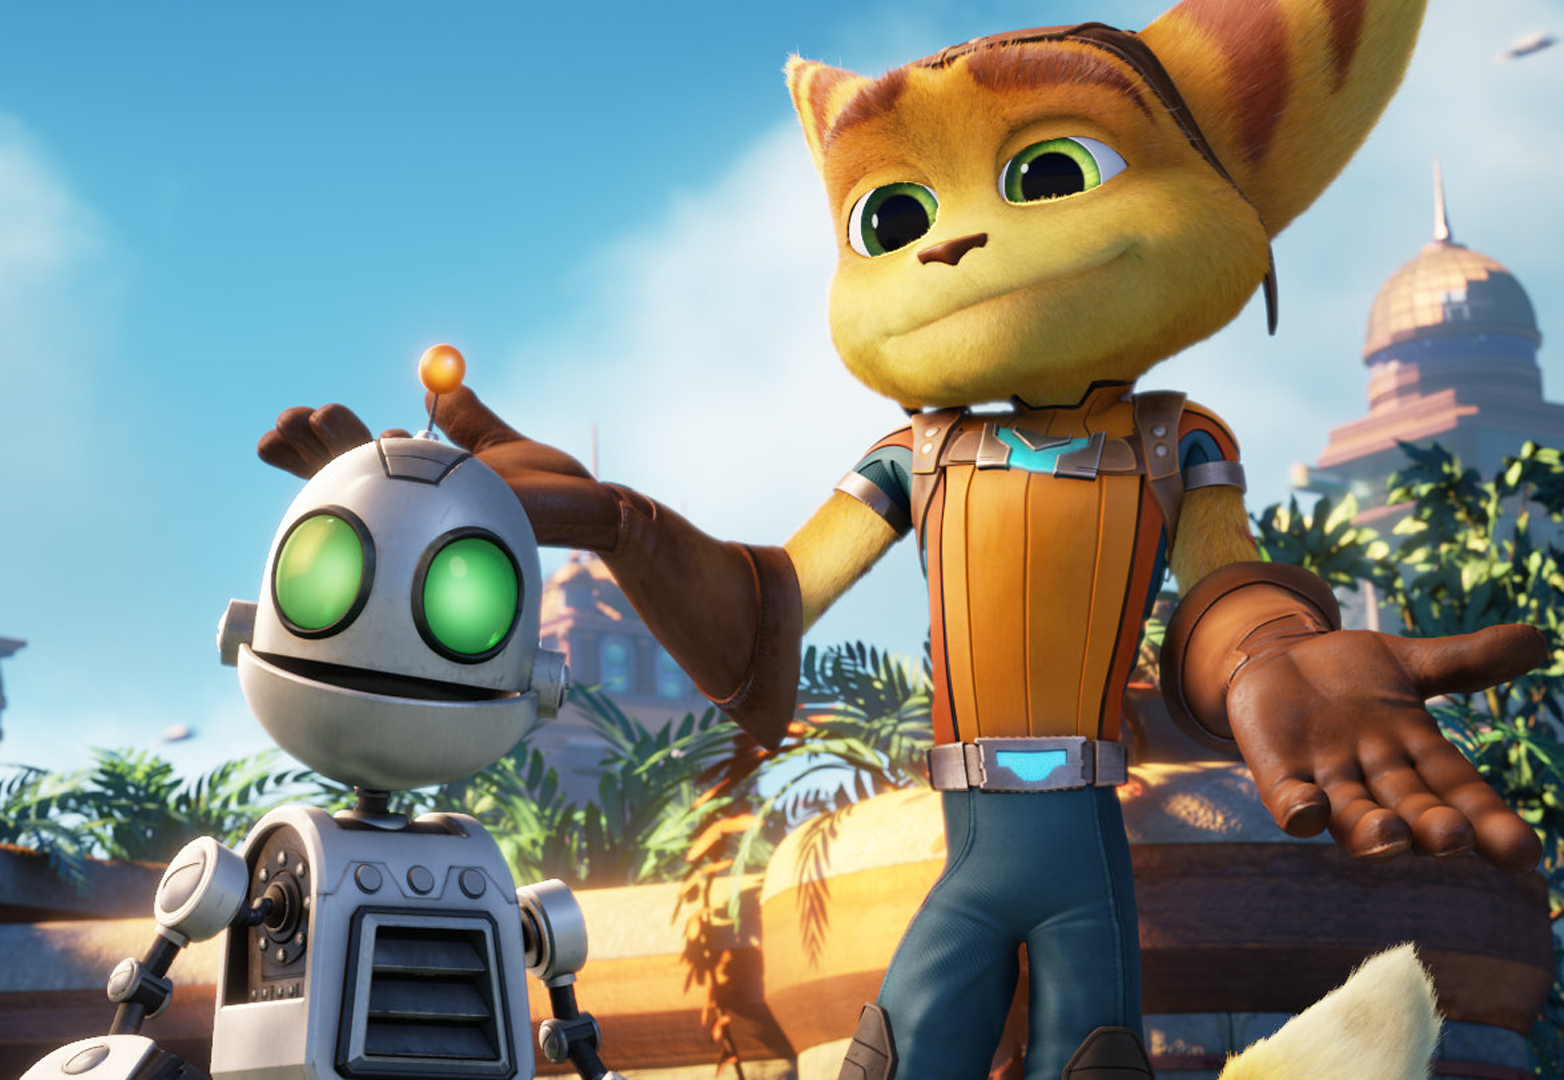 https://i2.wp.com/cdn.wccftech.com/wp-content/uploads/2015/02/Ratchet_Clank_movie_teaser_promo_cropped.png